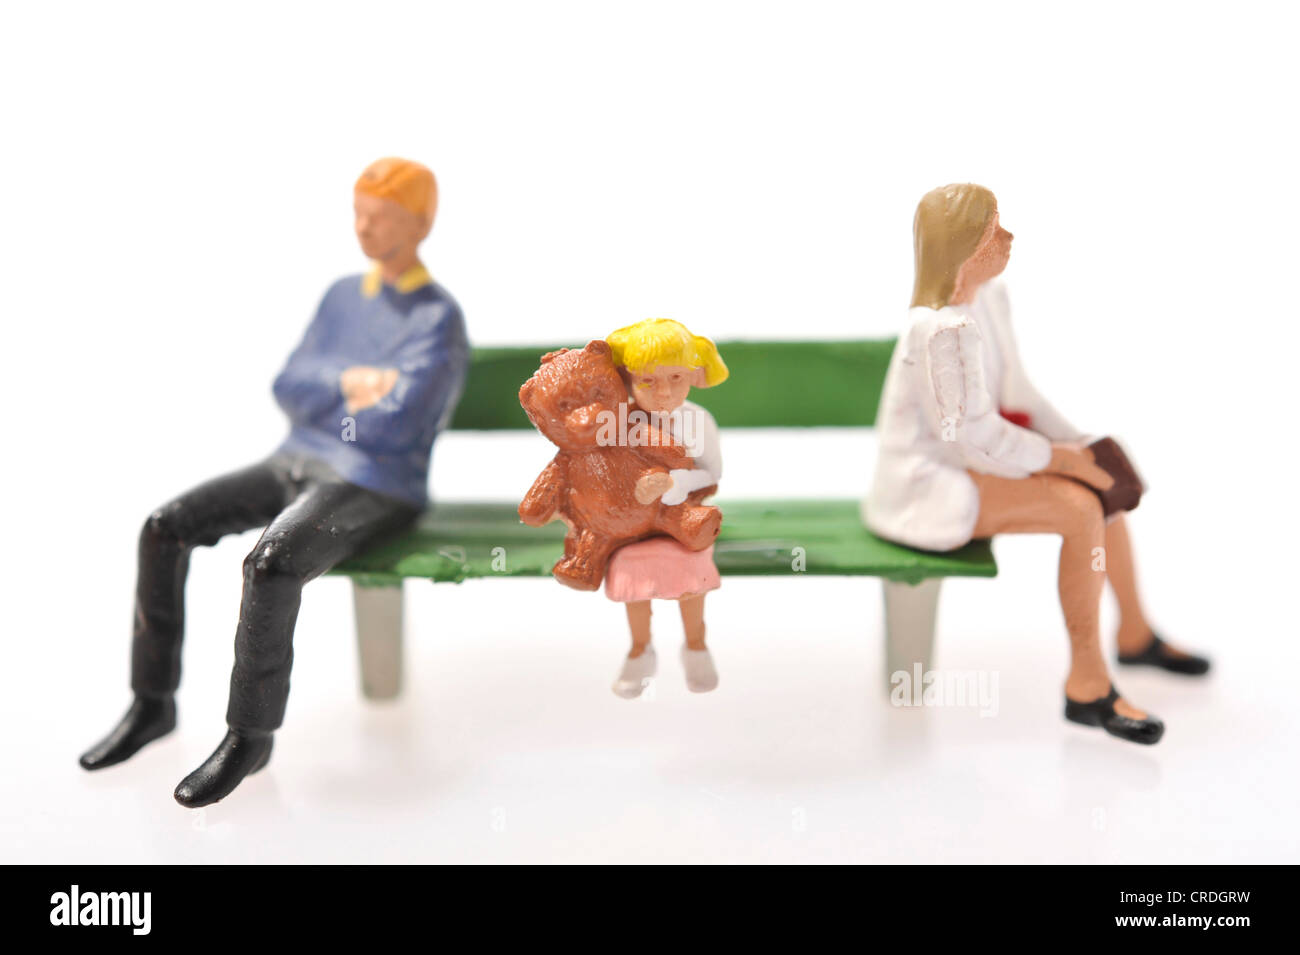 Figurines, family sitting on a bench - Stock Image